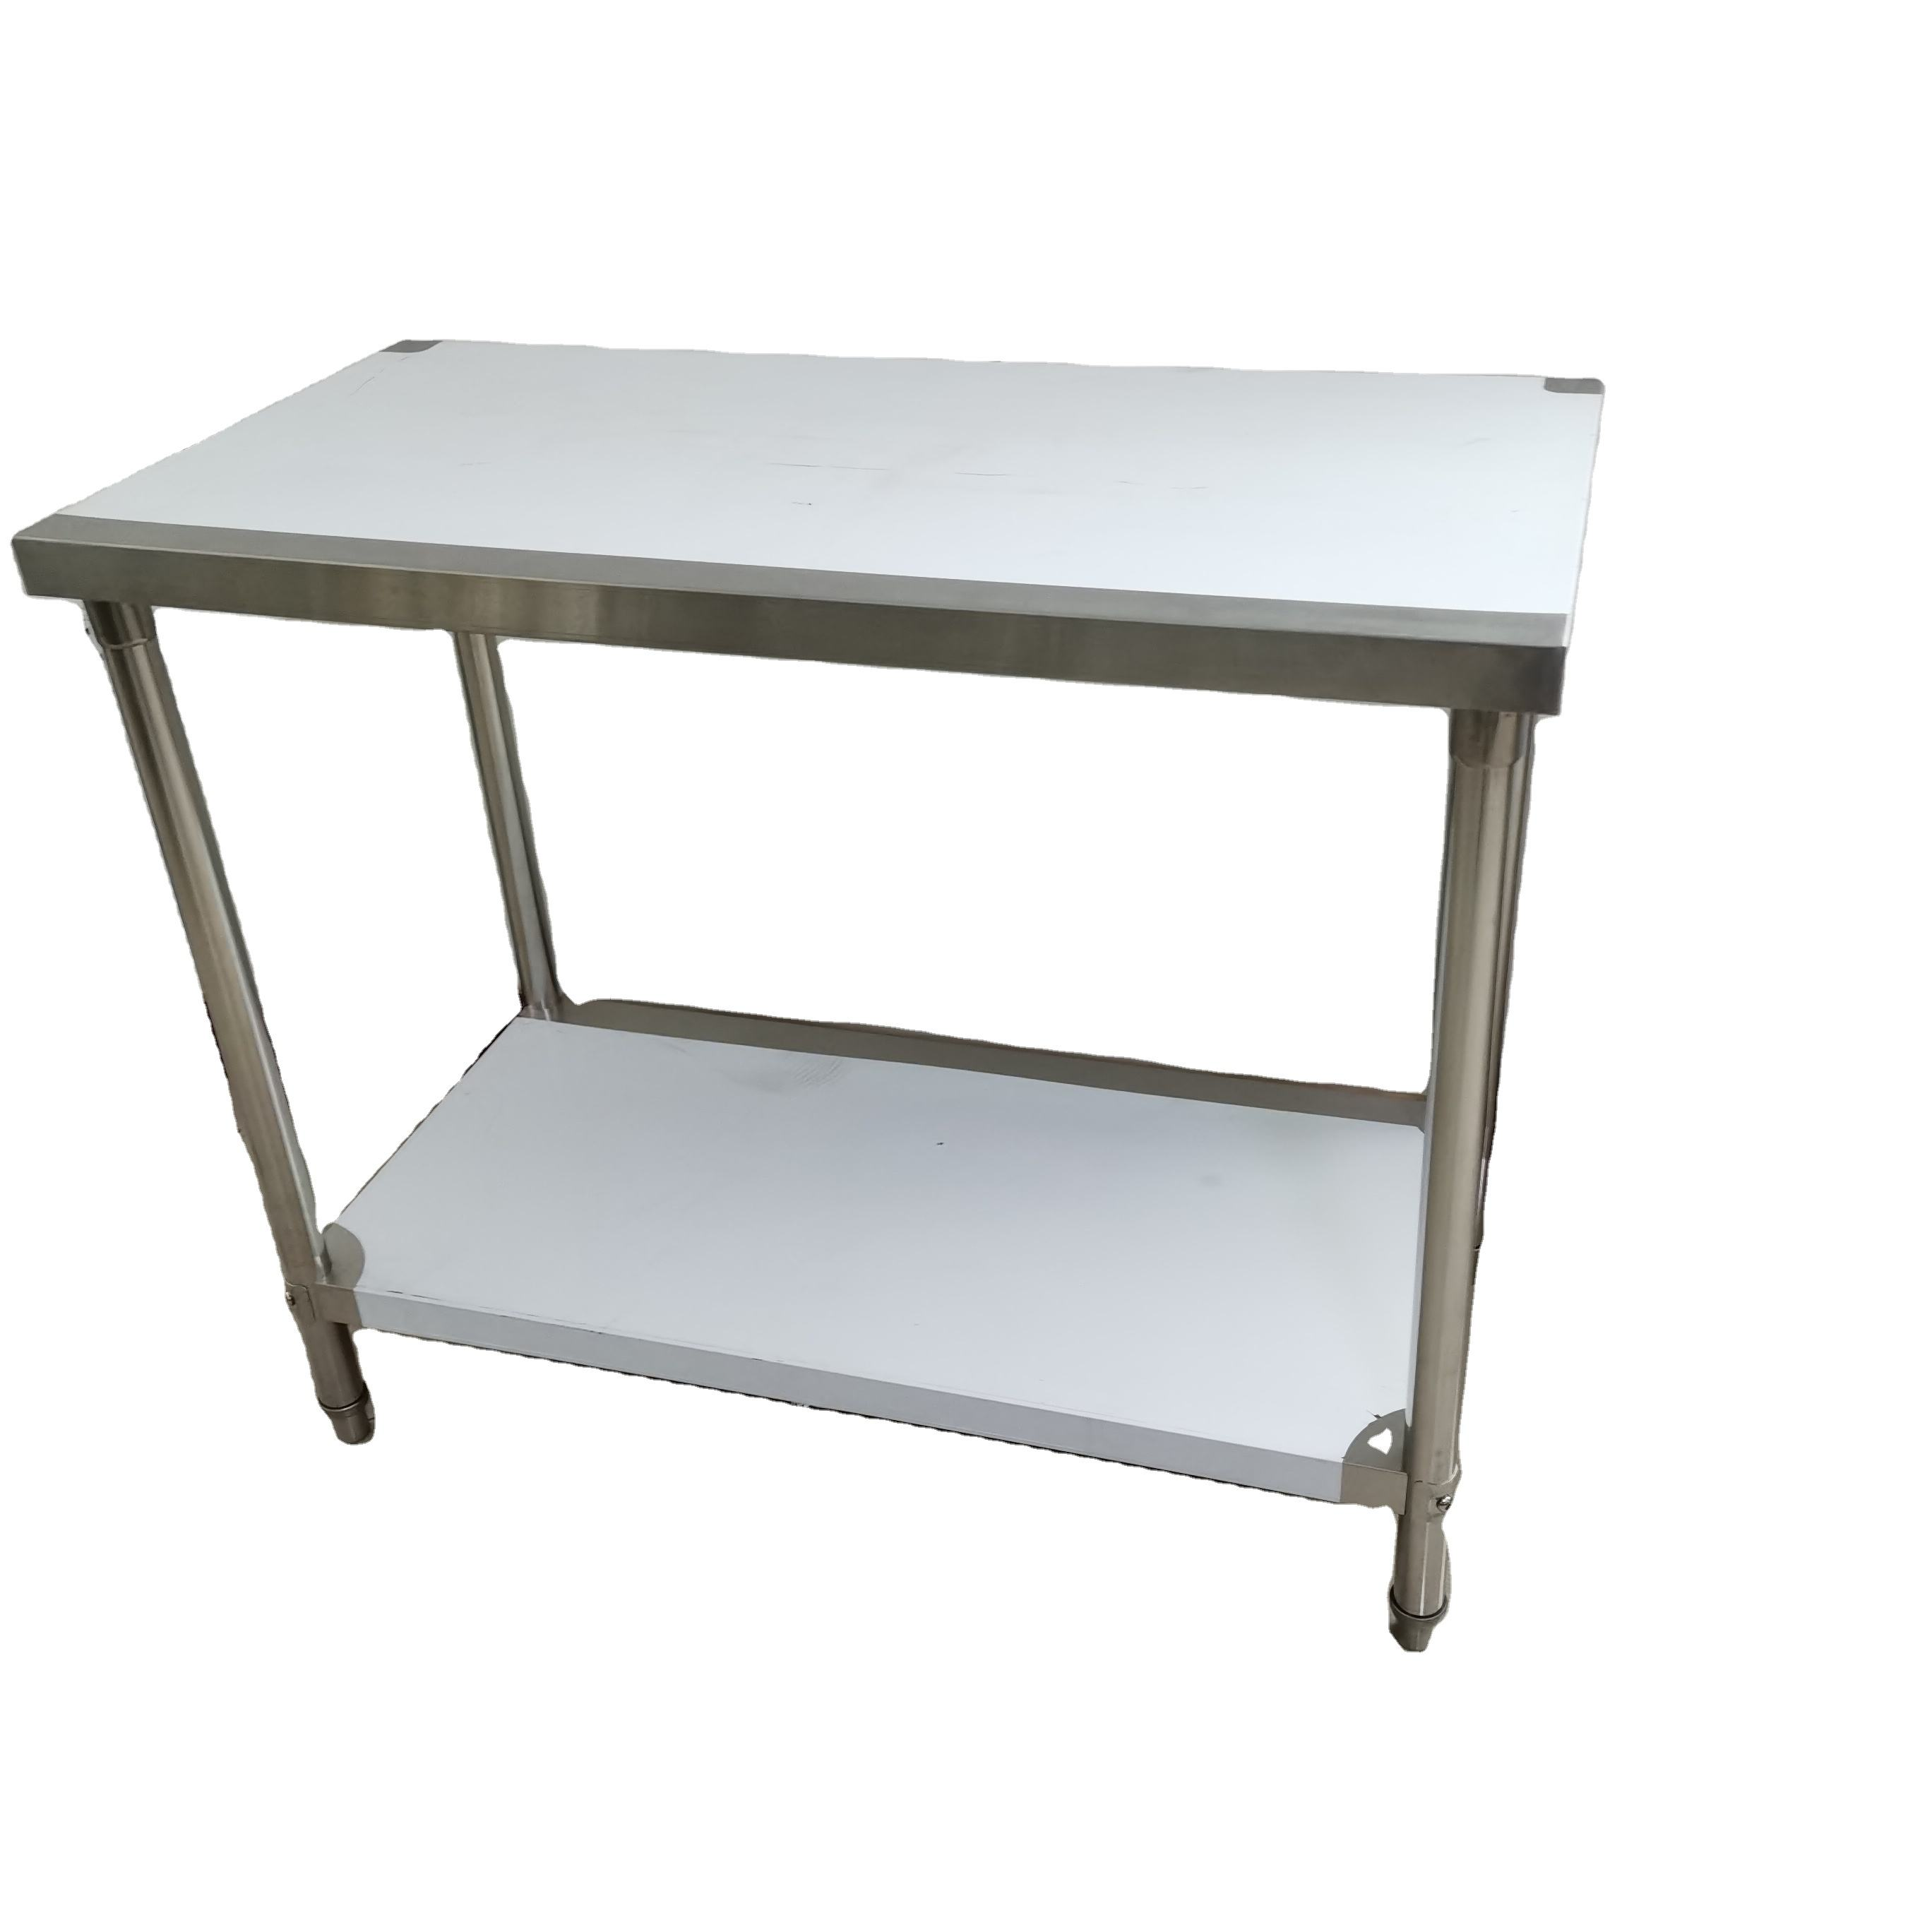 High Quality Stainless Steel Work Bench Outdoor Stainless Steel Benches